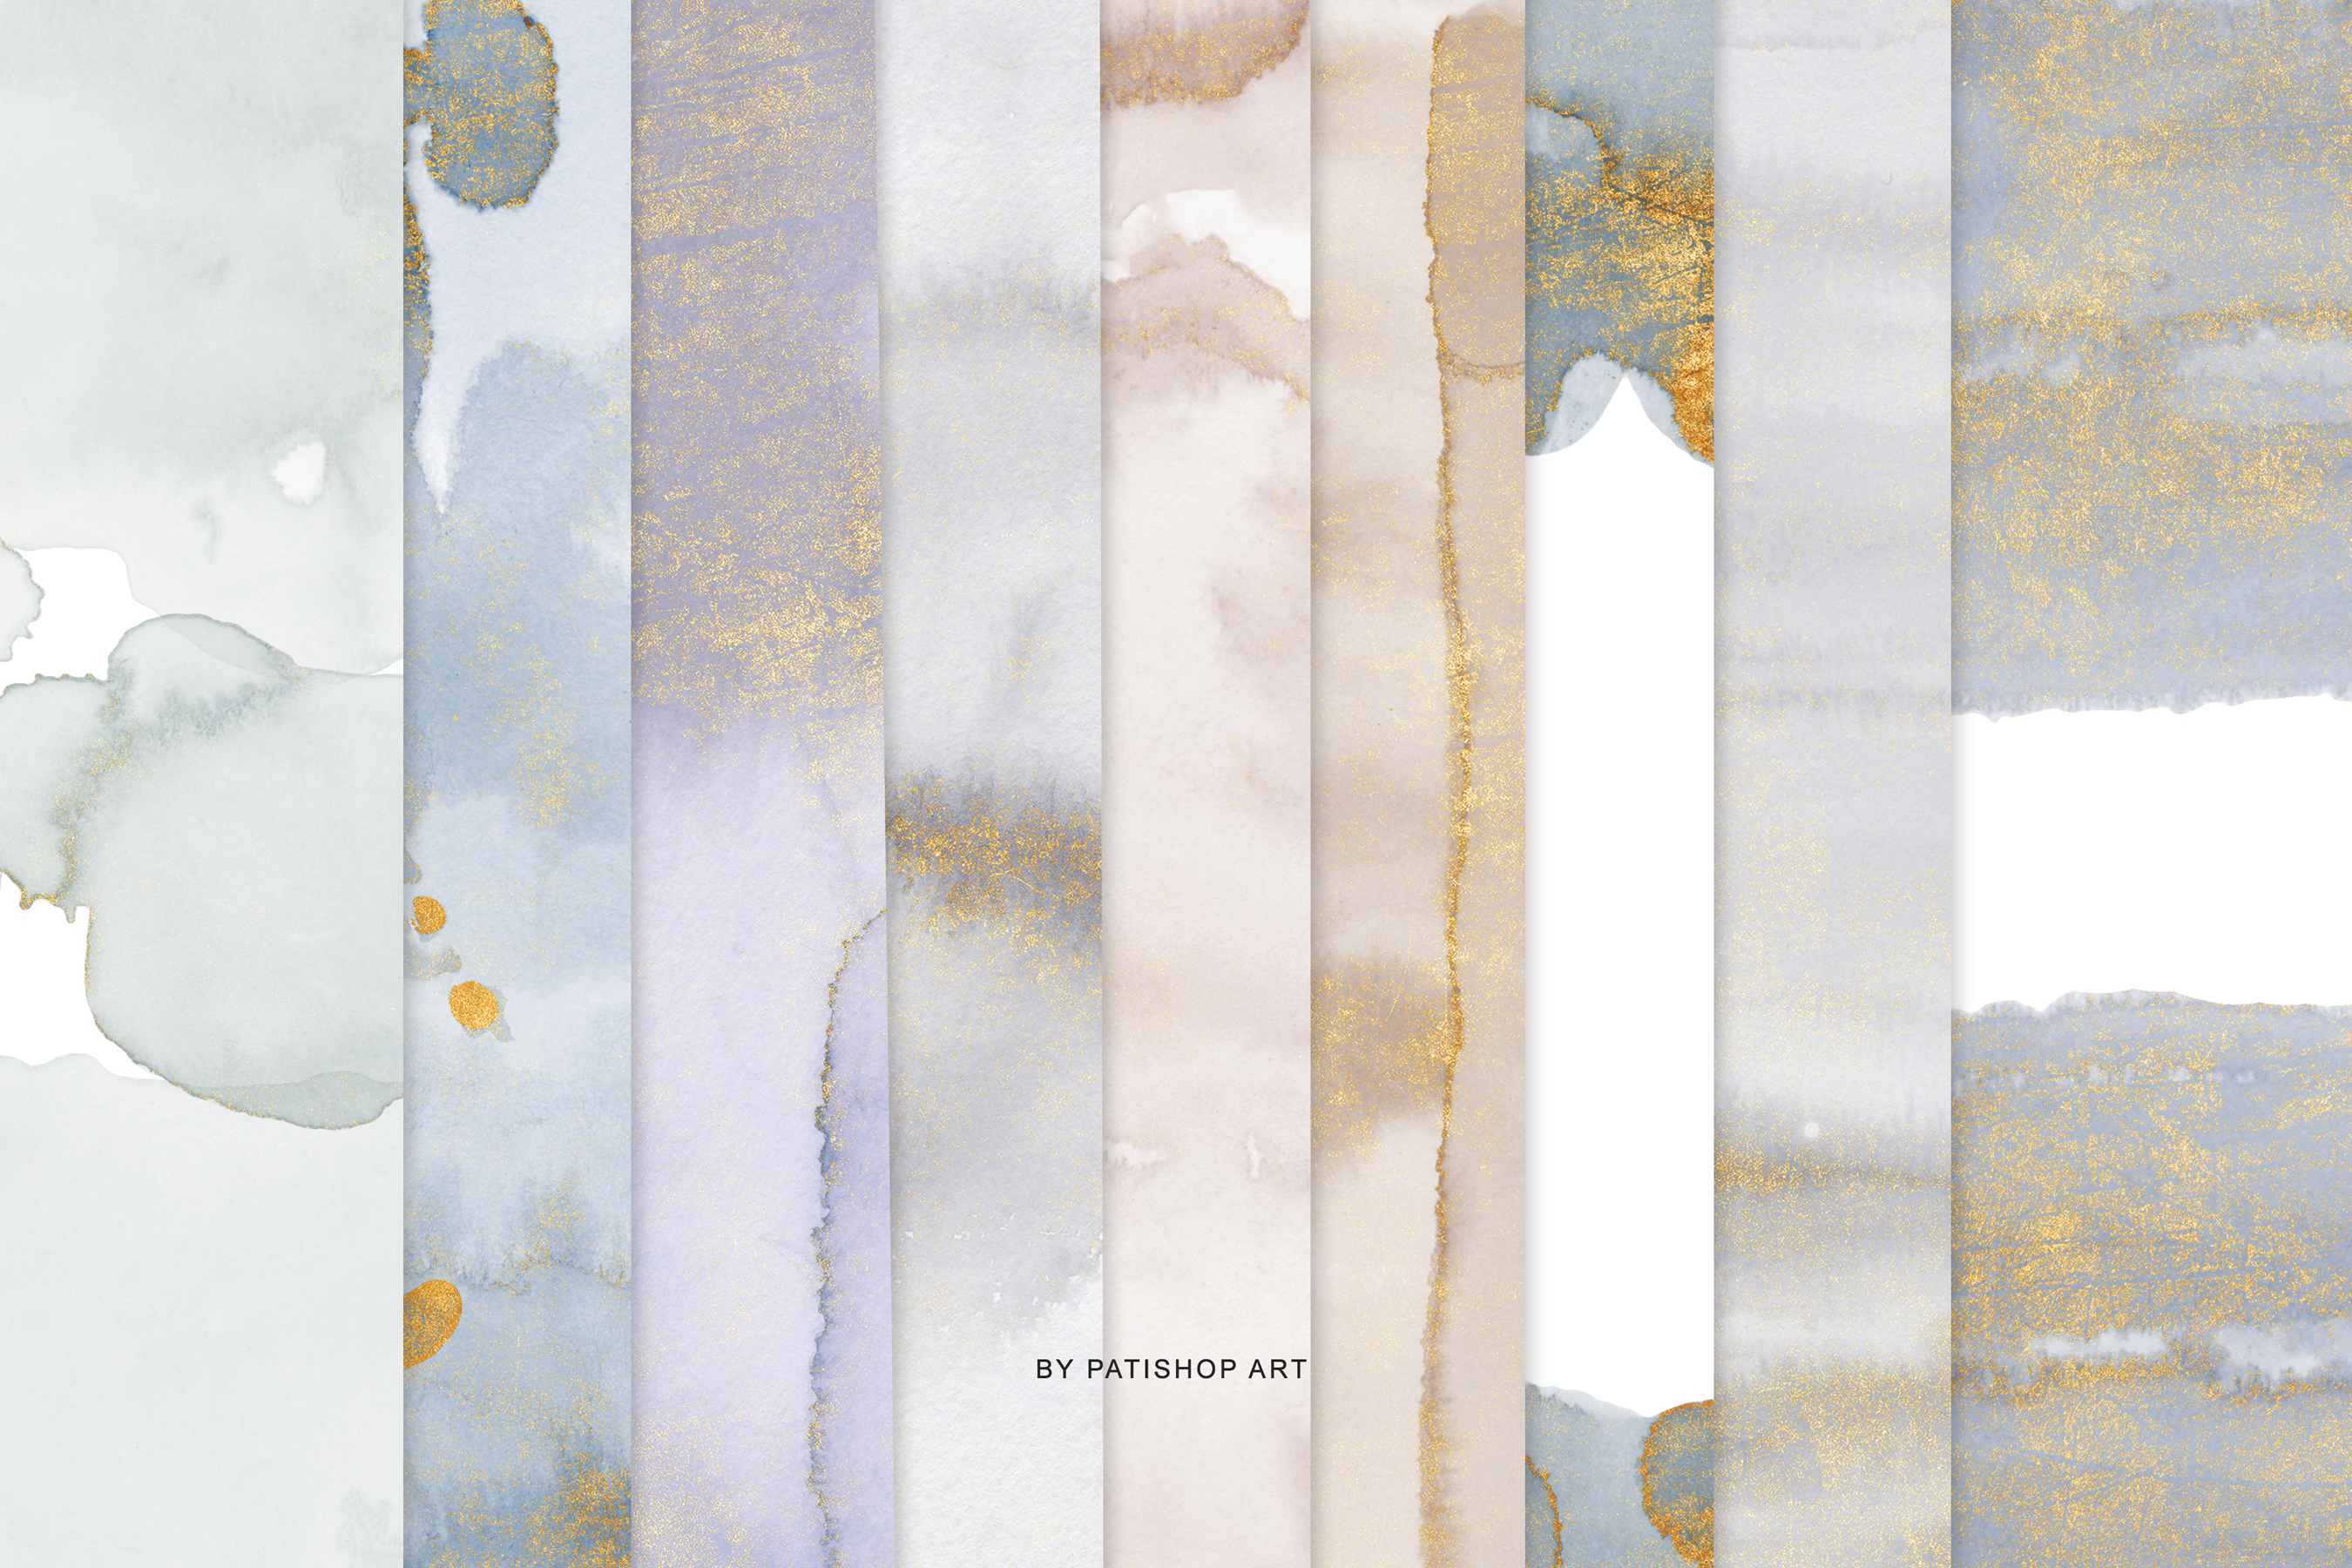 Watercolor Glittered Gray & Beige Background 5x7 example image 6